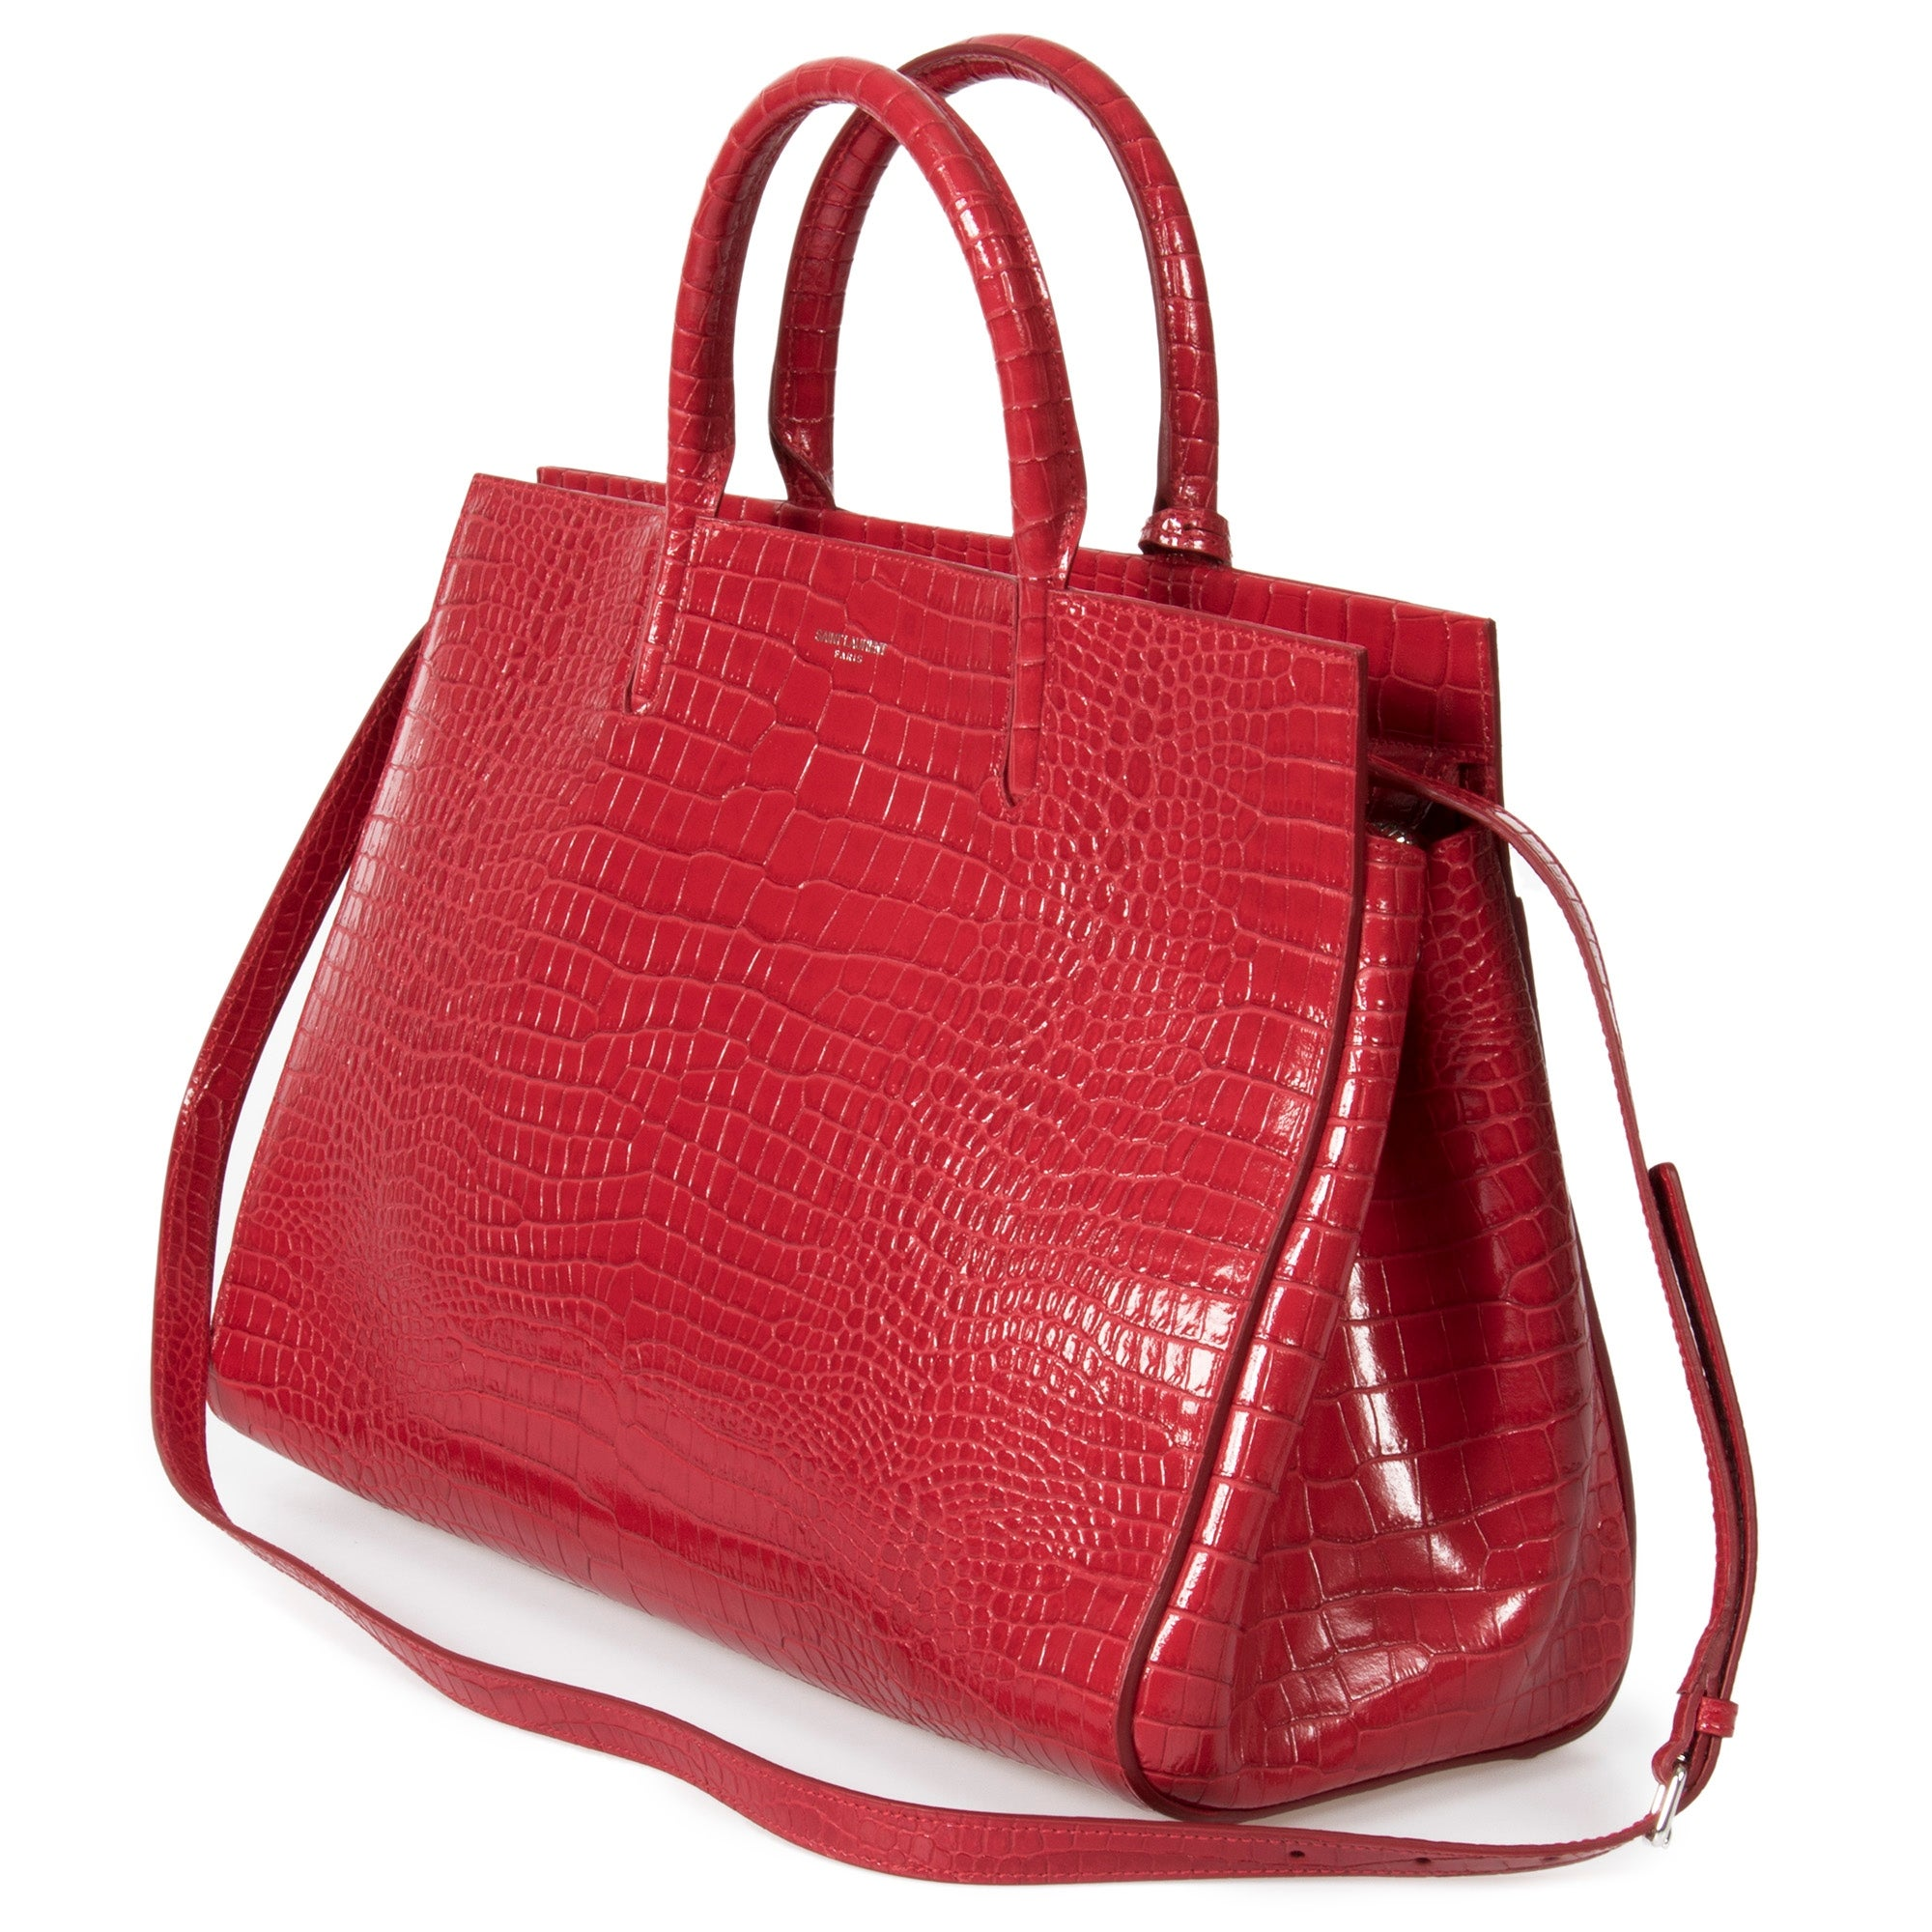 9533a0403 Shop Saint Laurent Red Crocodile Embossed Leather Medium Cabas Rive Gauche  Tote Bag - Ships To Canada - Overstock - 23077745